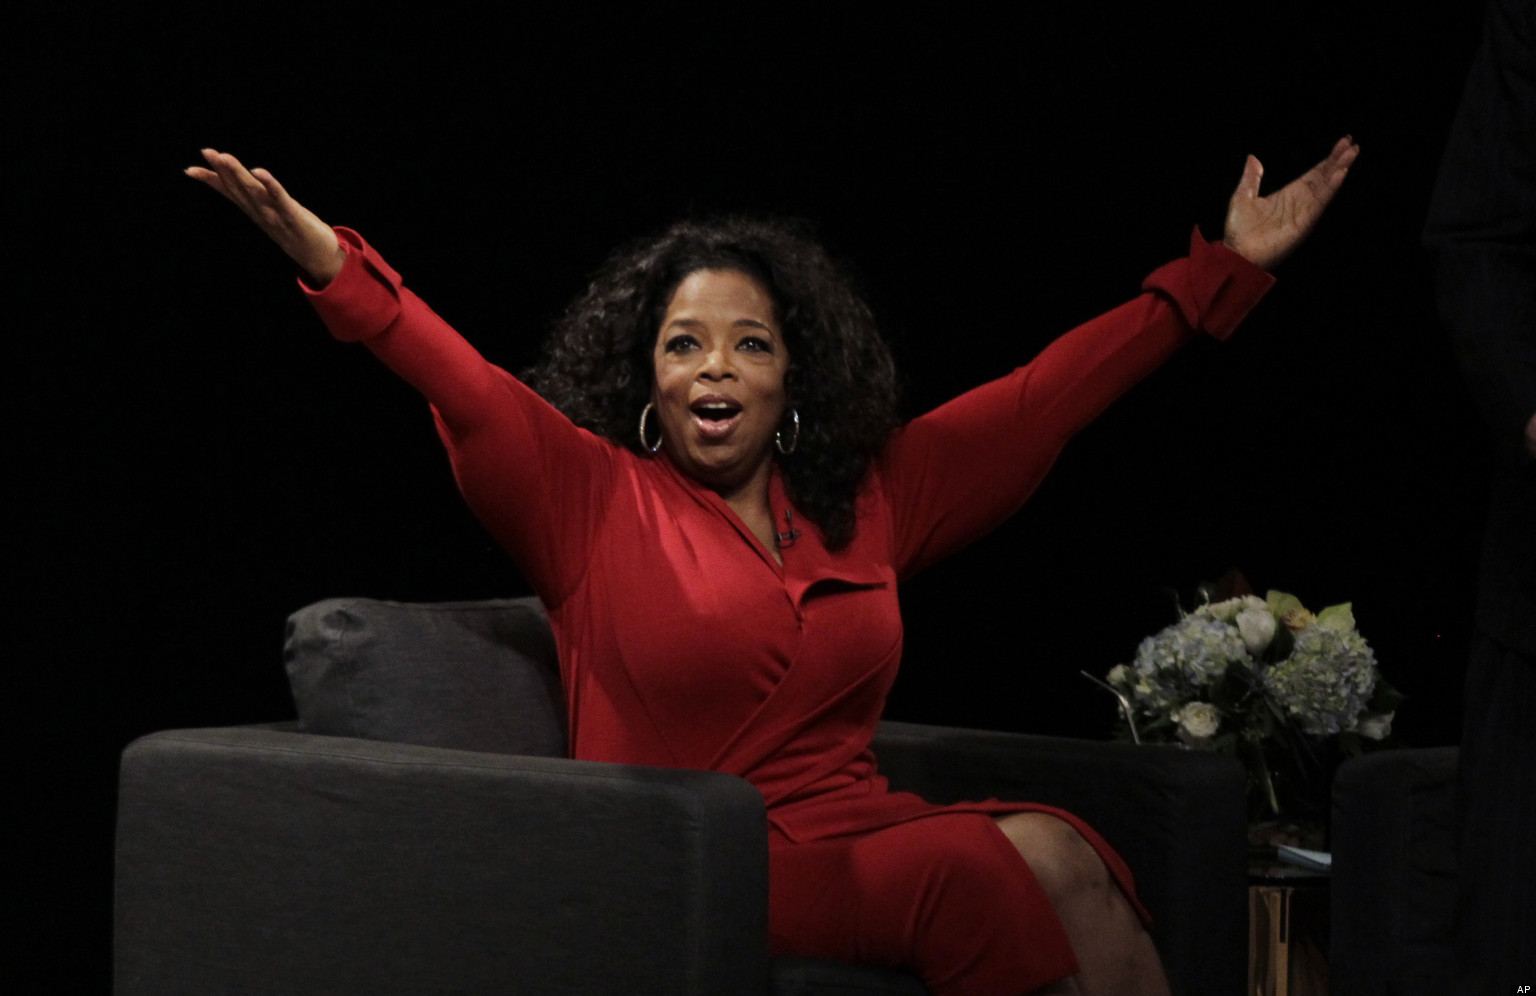 "Oprah Winfrey acknowledges the audience after she came to the stage for an interview with Ball  State University alumnus David Letterman, host of CBS's ""Late Show,"" at Ball State University in Muncie, Ind., Monday, Nov. 26, 2012. The conversation is part of the David Letterman Distinguished Professional Lecture and Workshop Series. (AP Photo/Michael Conroy)"